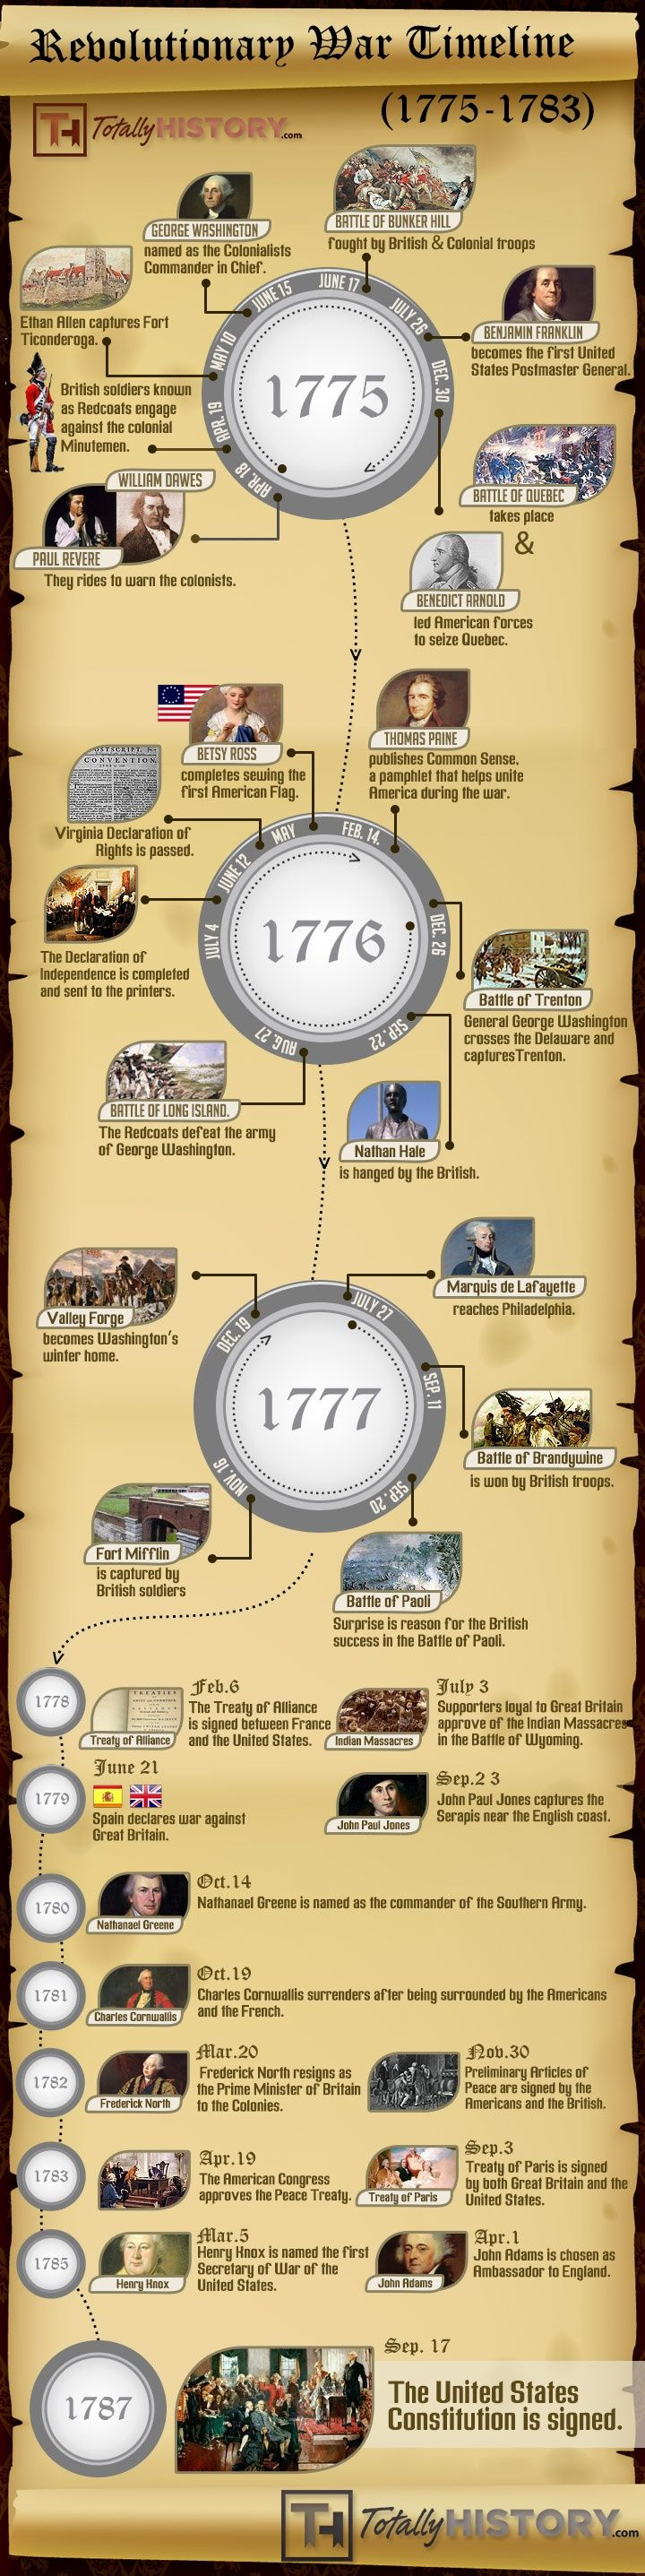 Revolutionary War Timeline (1775-1783)  infographic